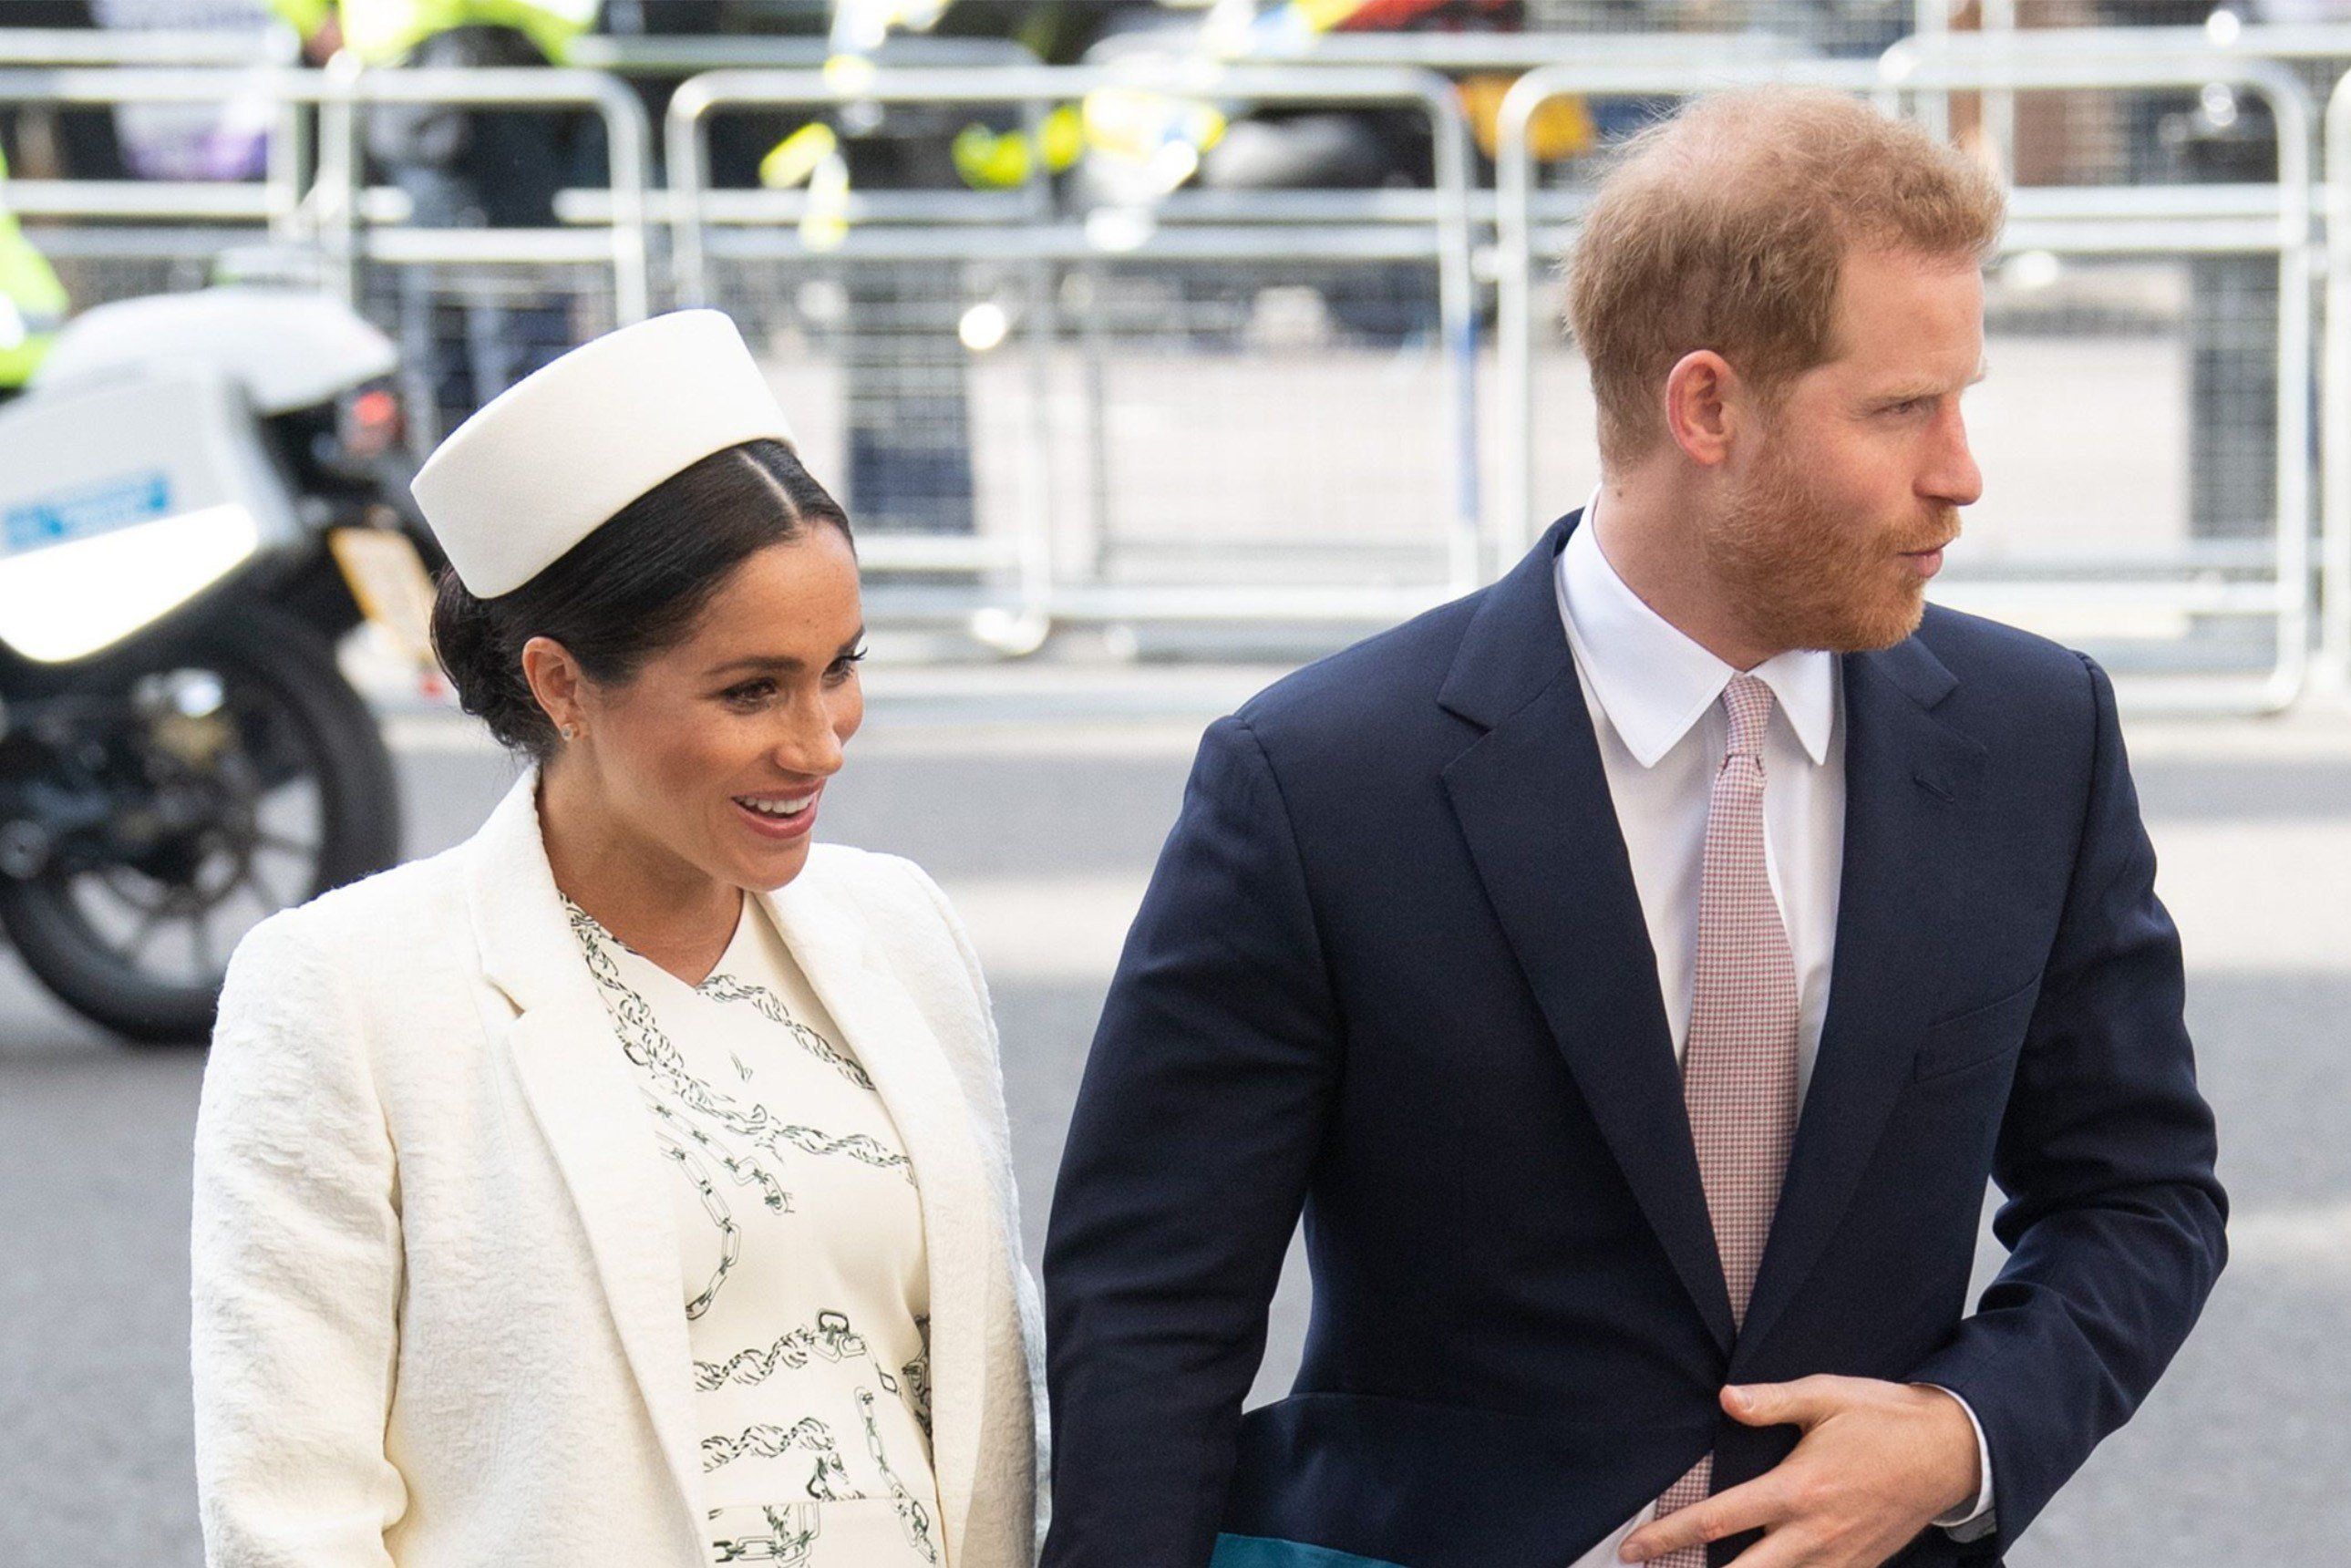 Royal household split because of Prince Harry and Prince William's 'differing interests', claims royal expert